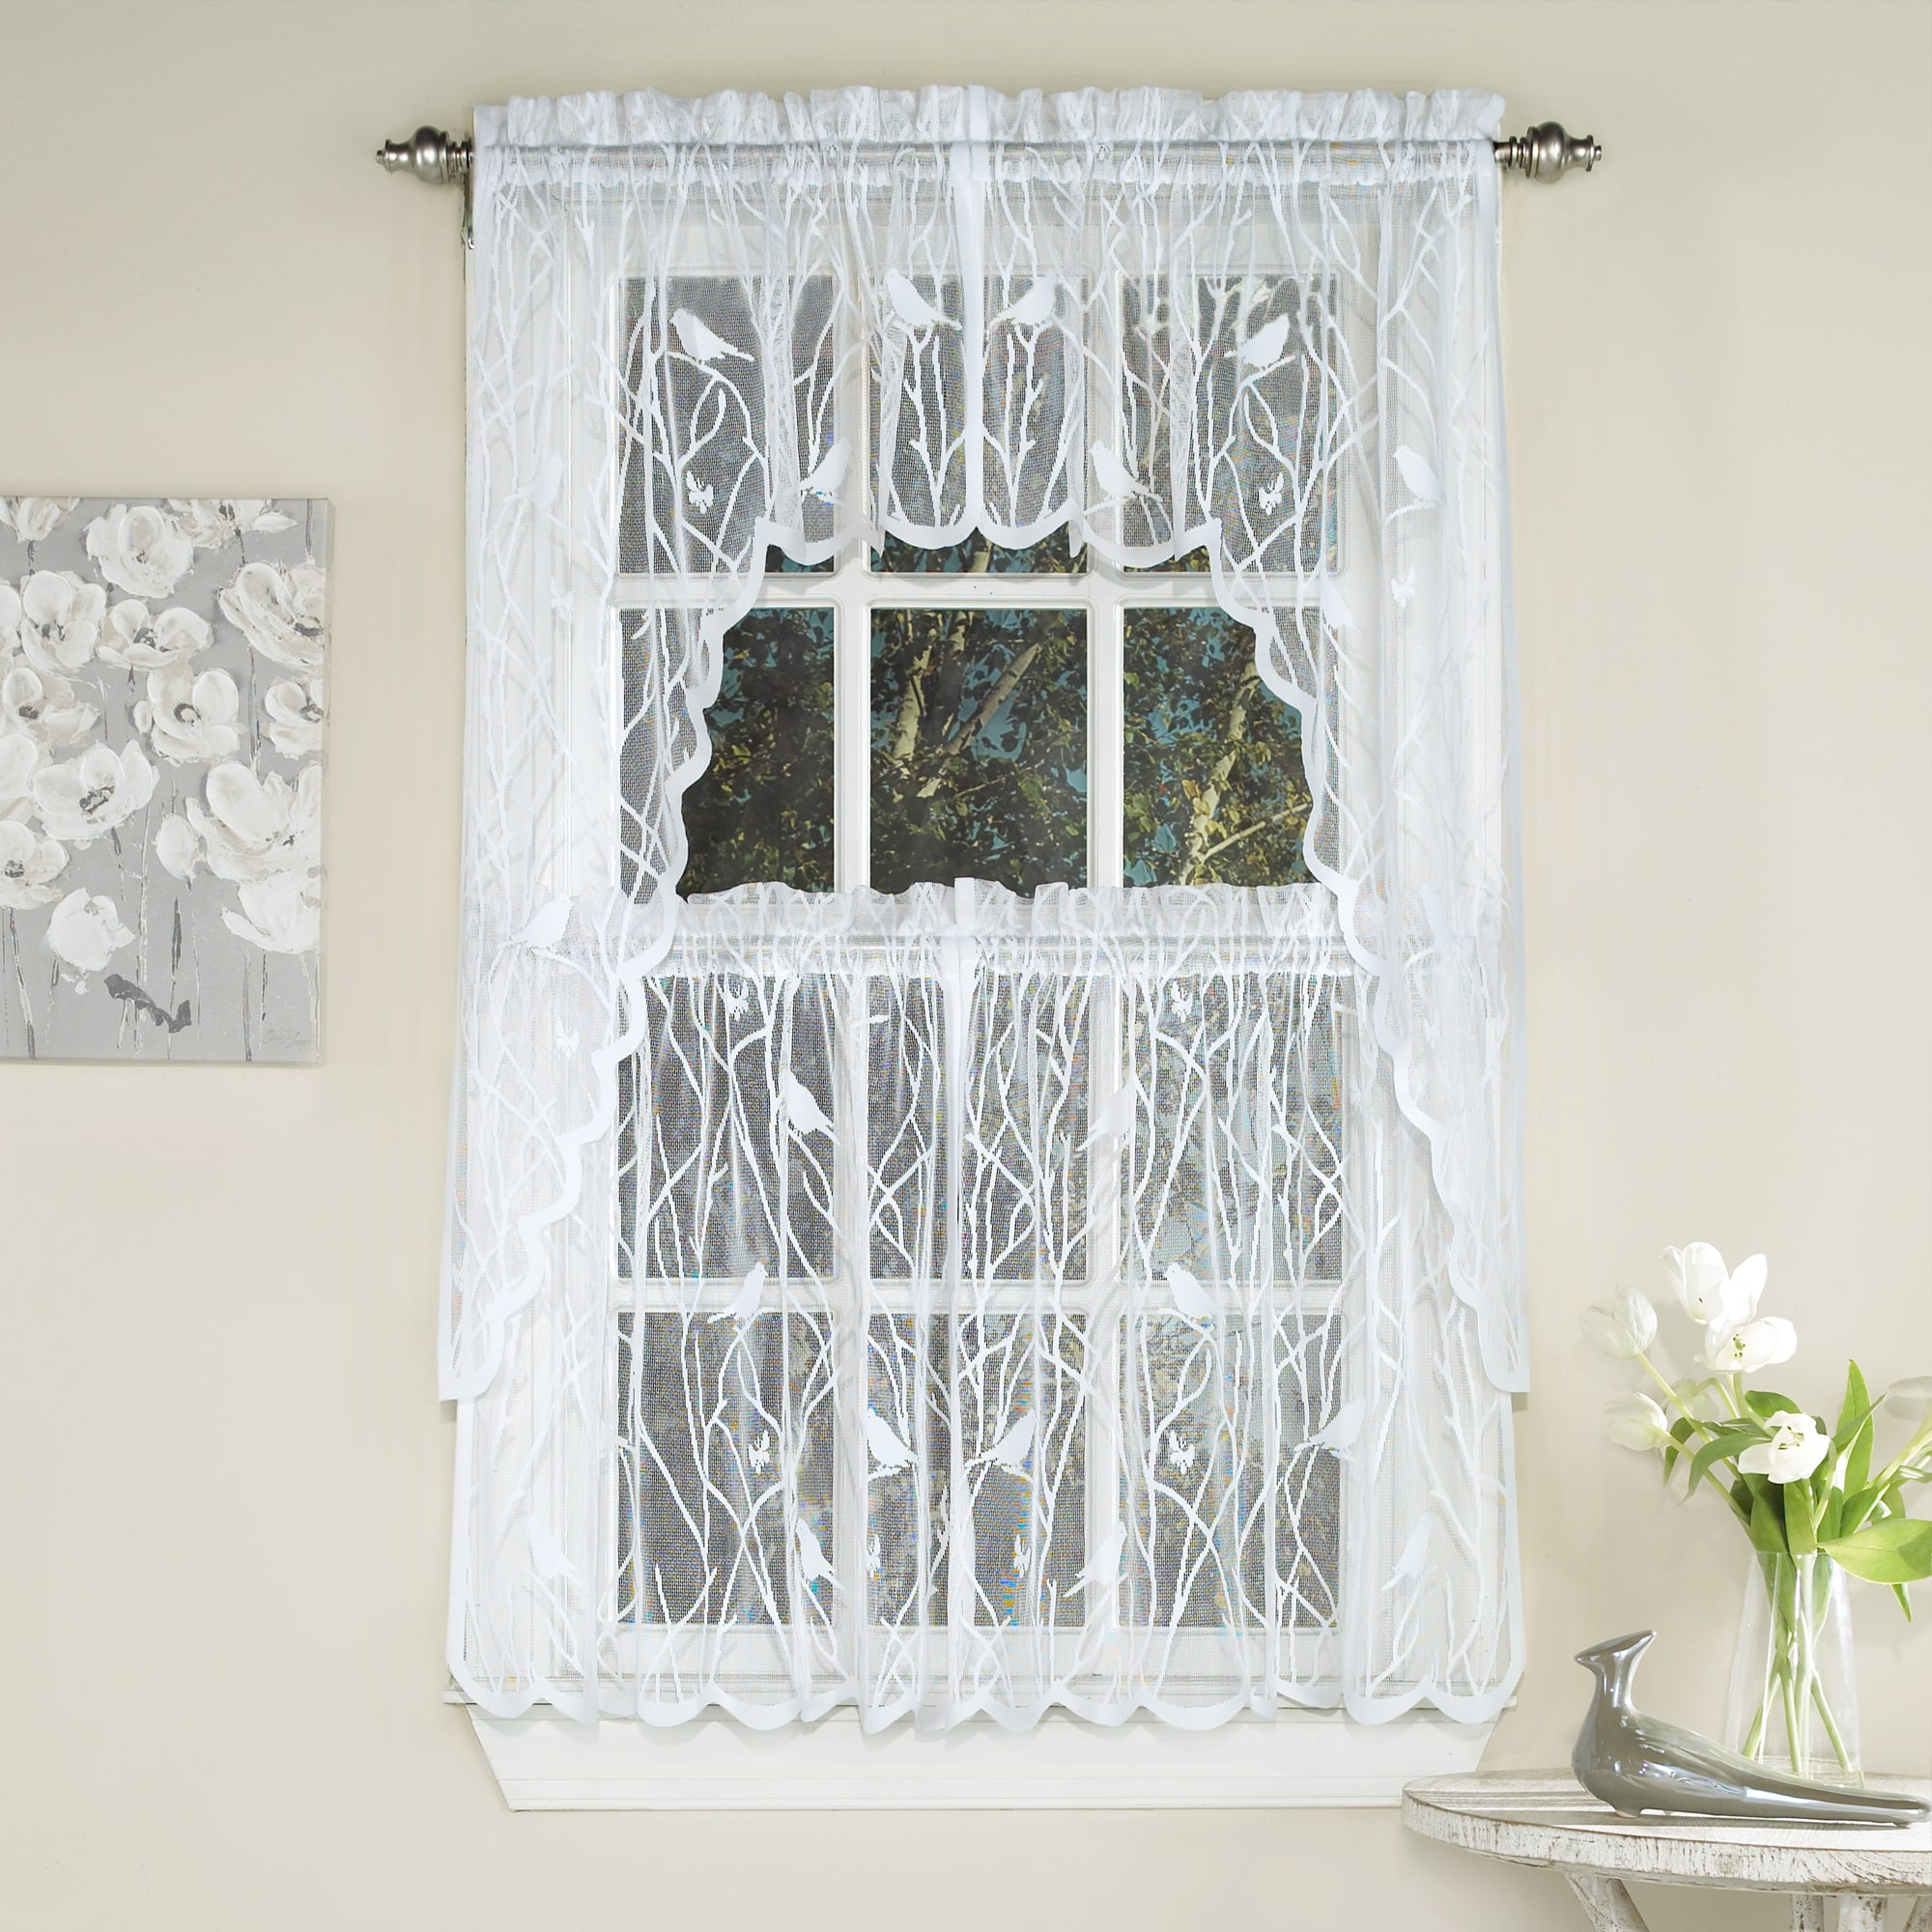 long beautiful swags size lovable z of breathtaking vanessa valances bedroom wisteria splendid ex window pair lace shining victorian and kitchen amazing dreadful x curtains full gorgeous valance trendy sears swag lac fiona